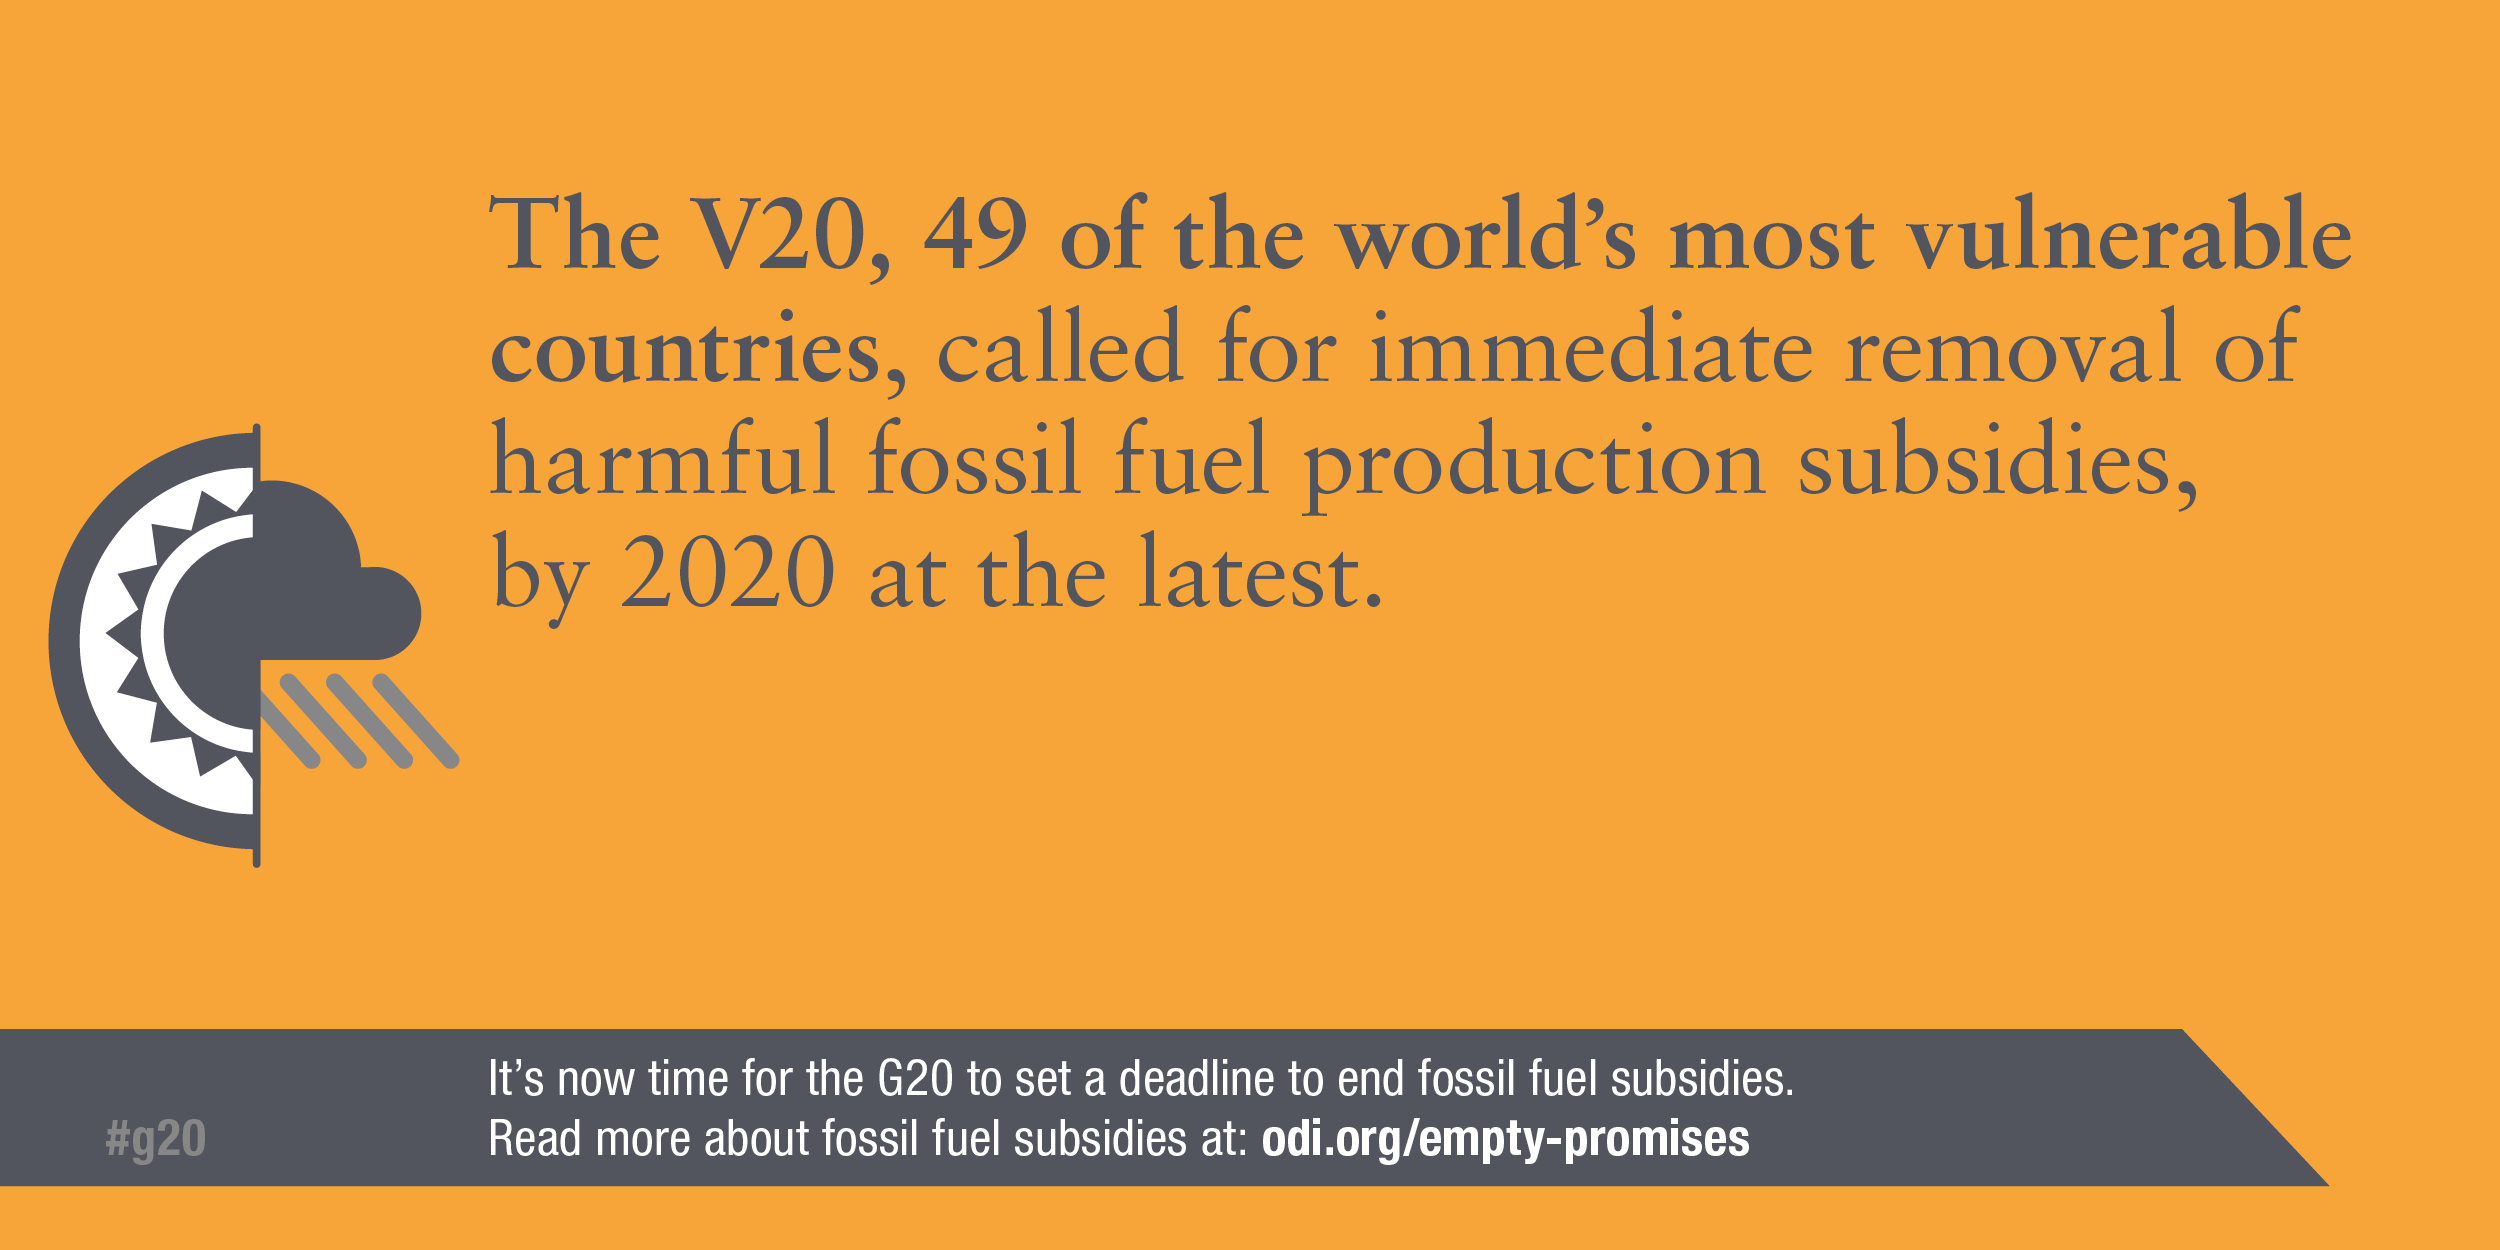 Infographic: The world's most vulnerable countries support the immediate removal of fossil fuel subsidies by 2020 at the latest